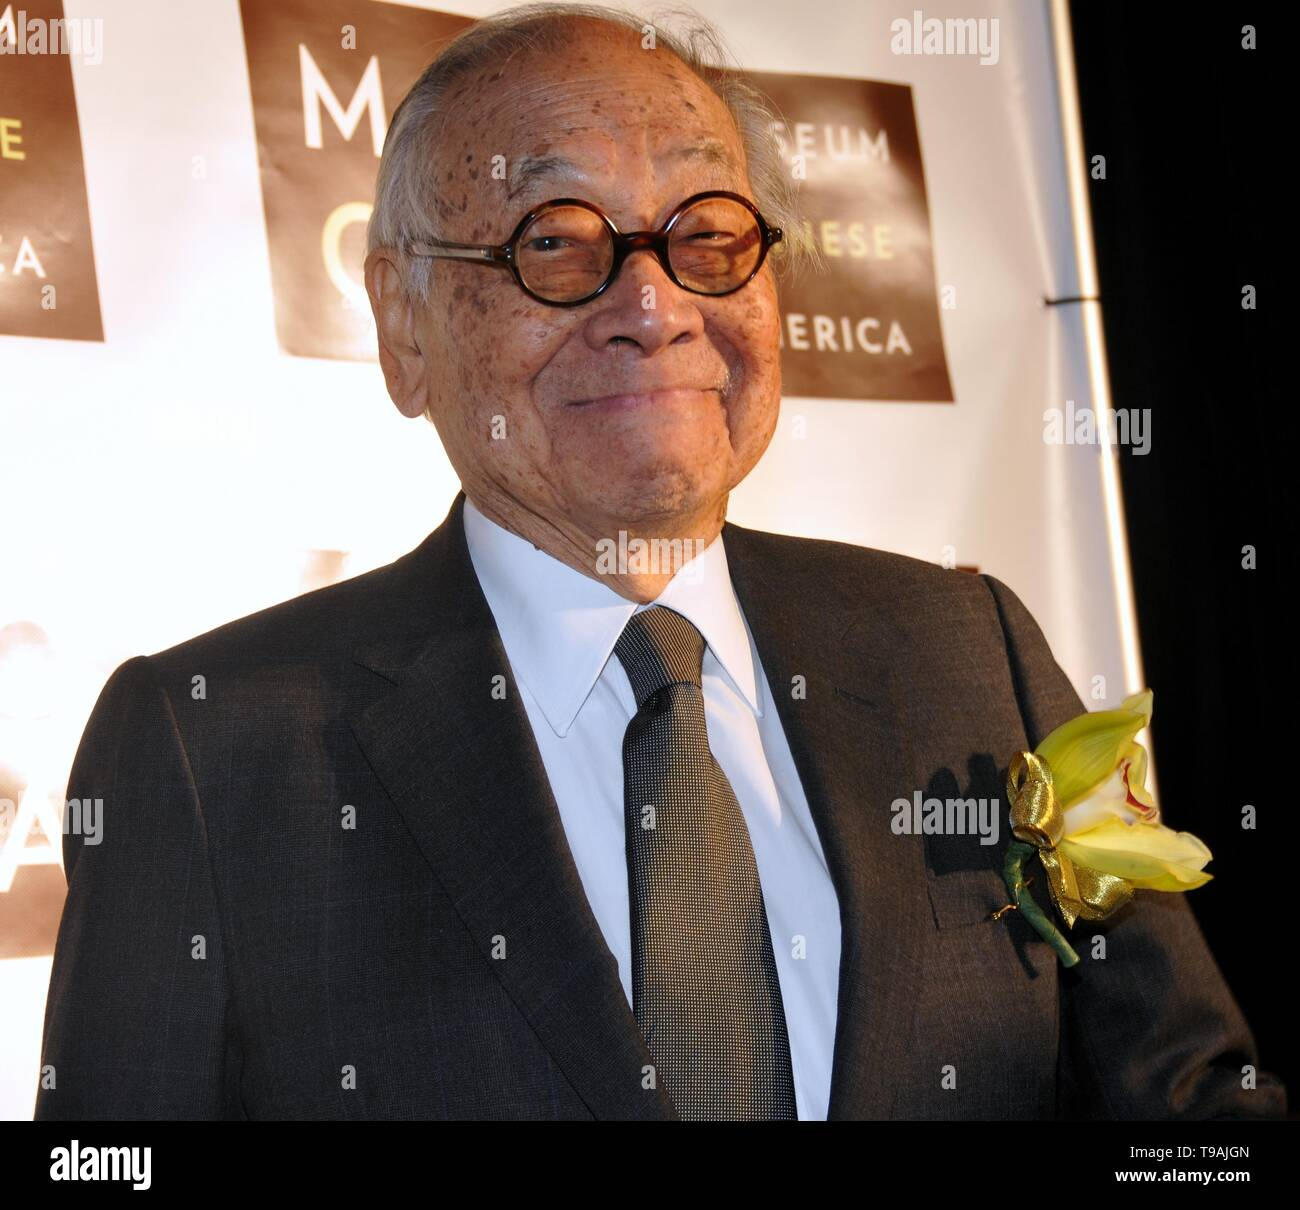 Beijing, China. 16th Dec, 2009. File photo taken on Dec. 16, 2009 shows world-renowned architect Ieoh Ming Pei attending a dinner event at the Museum of Chinese in America in New York, the United States. Ieoh Ming Pei, commonly known as I.M. Pei, died Thursday at age 102. Pei was born in Guangzhou of China and moved to the United States in 1935. He won a wide variety of prizes and awards in the field of architecture. Credit: Wang Jiangang/Xinhua/Alamy Live News - Stock Image